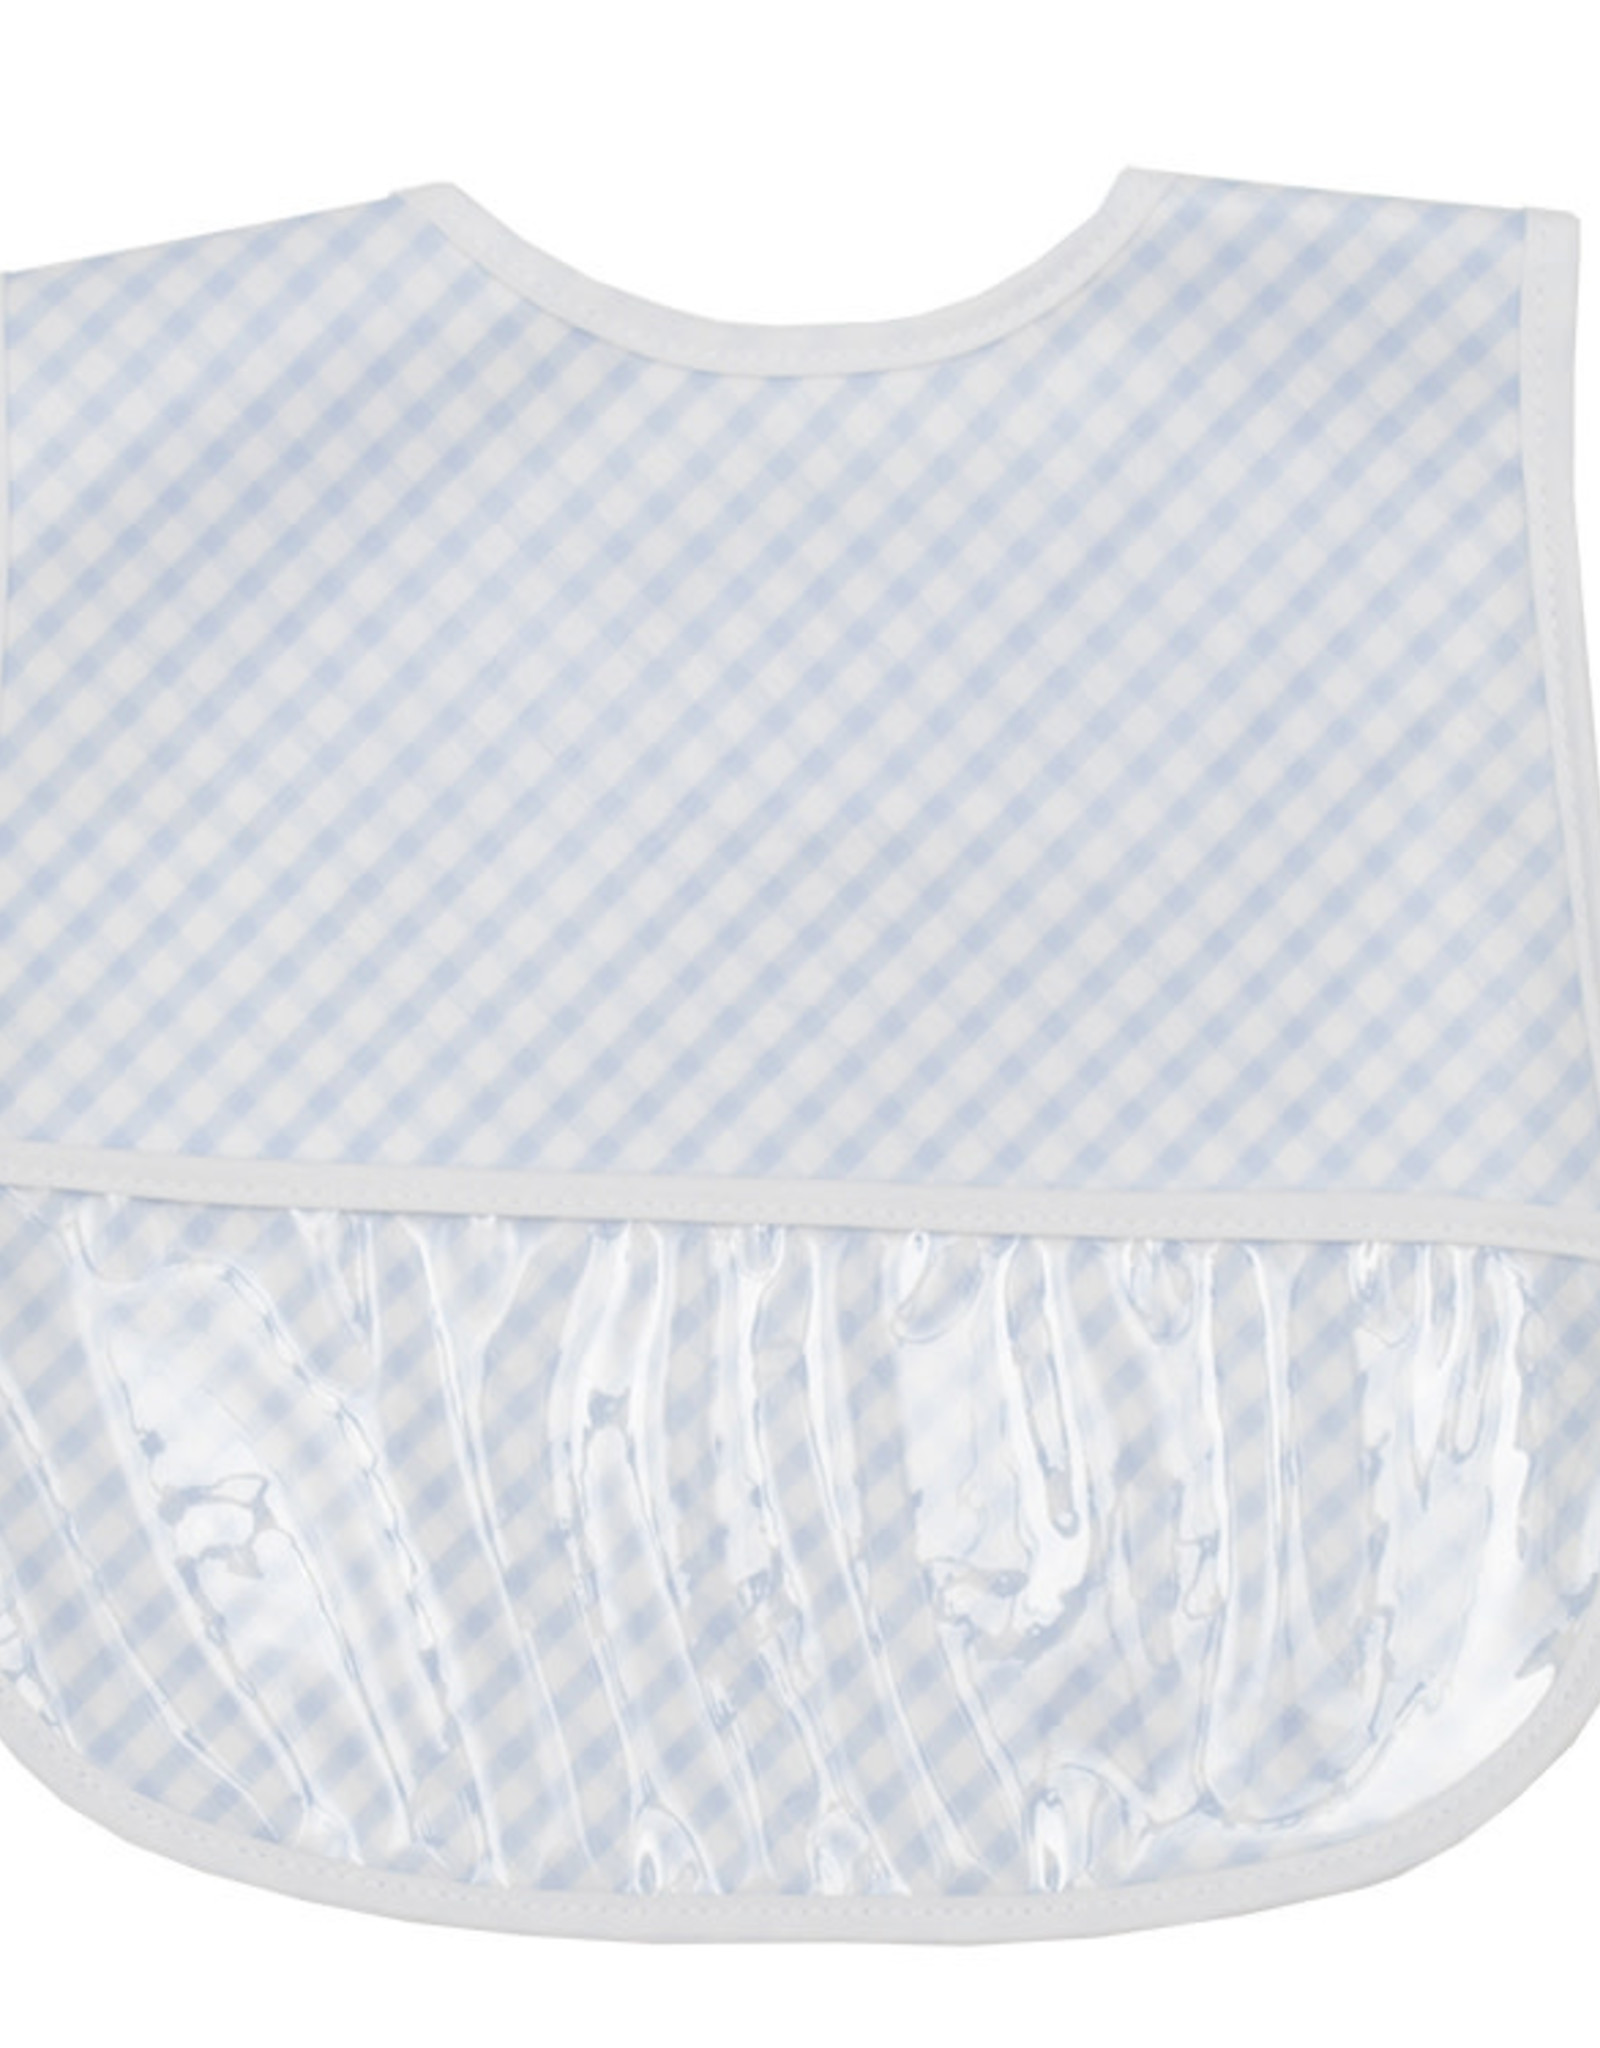 Three Marthas Bib Blue Check Laminated